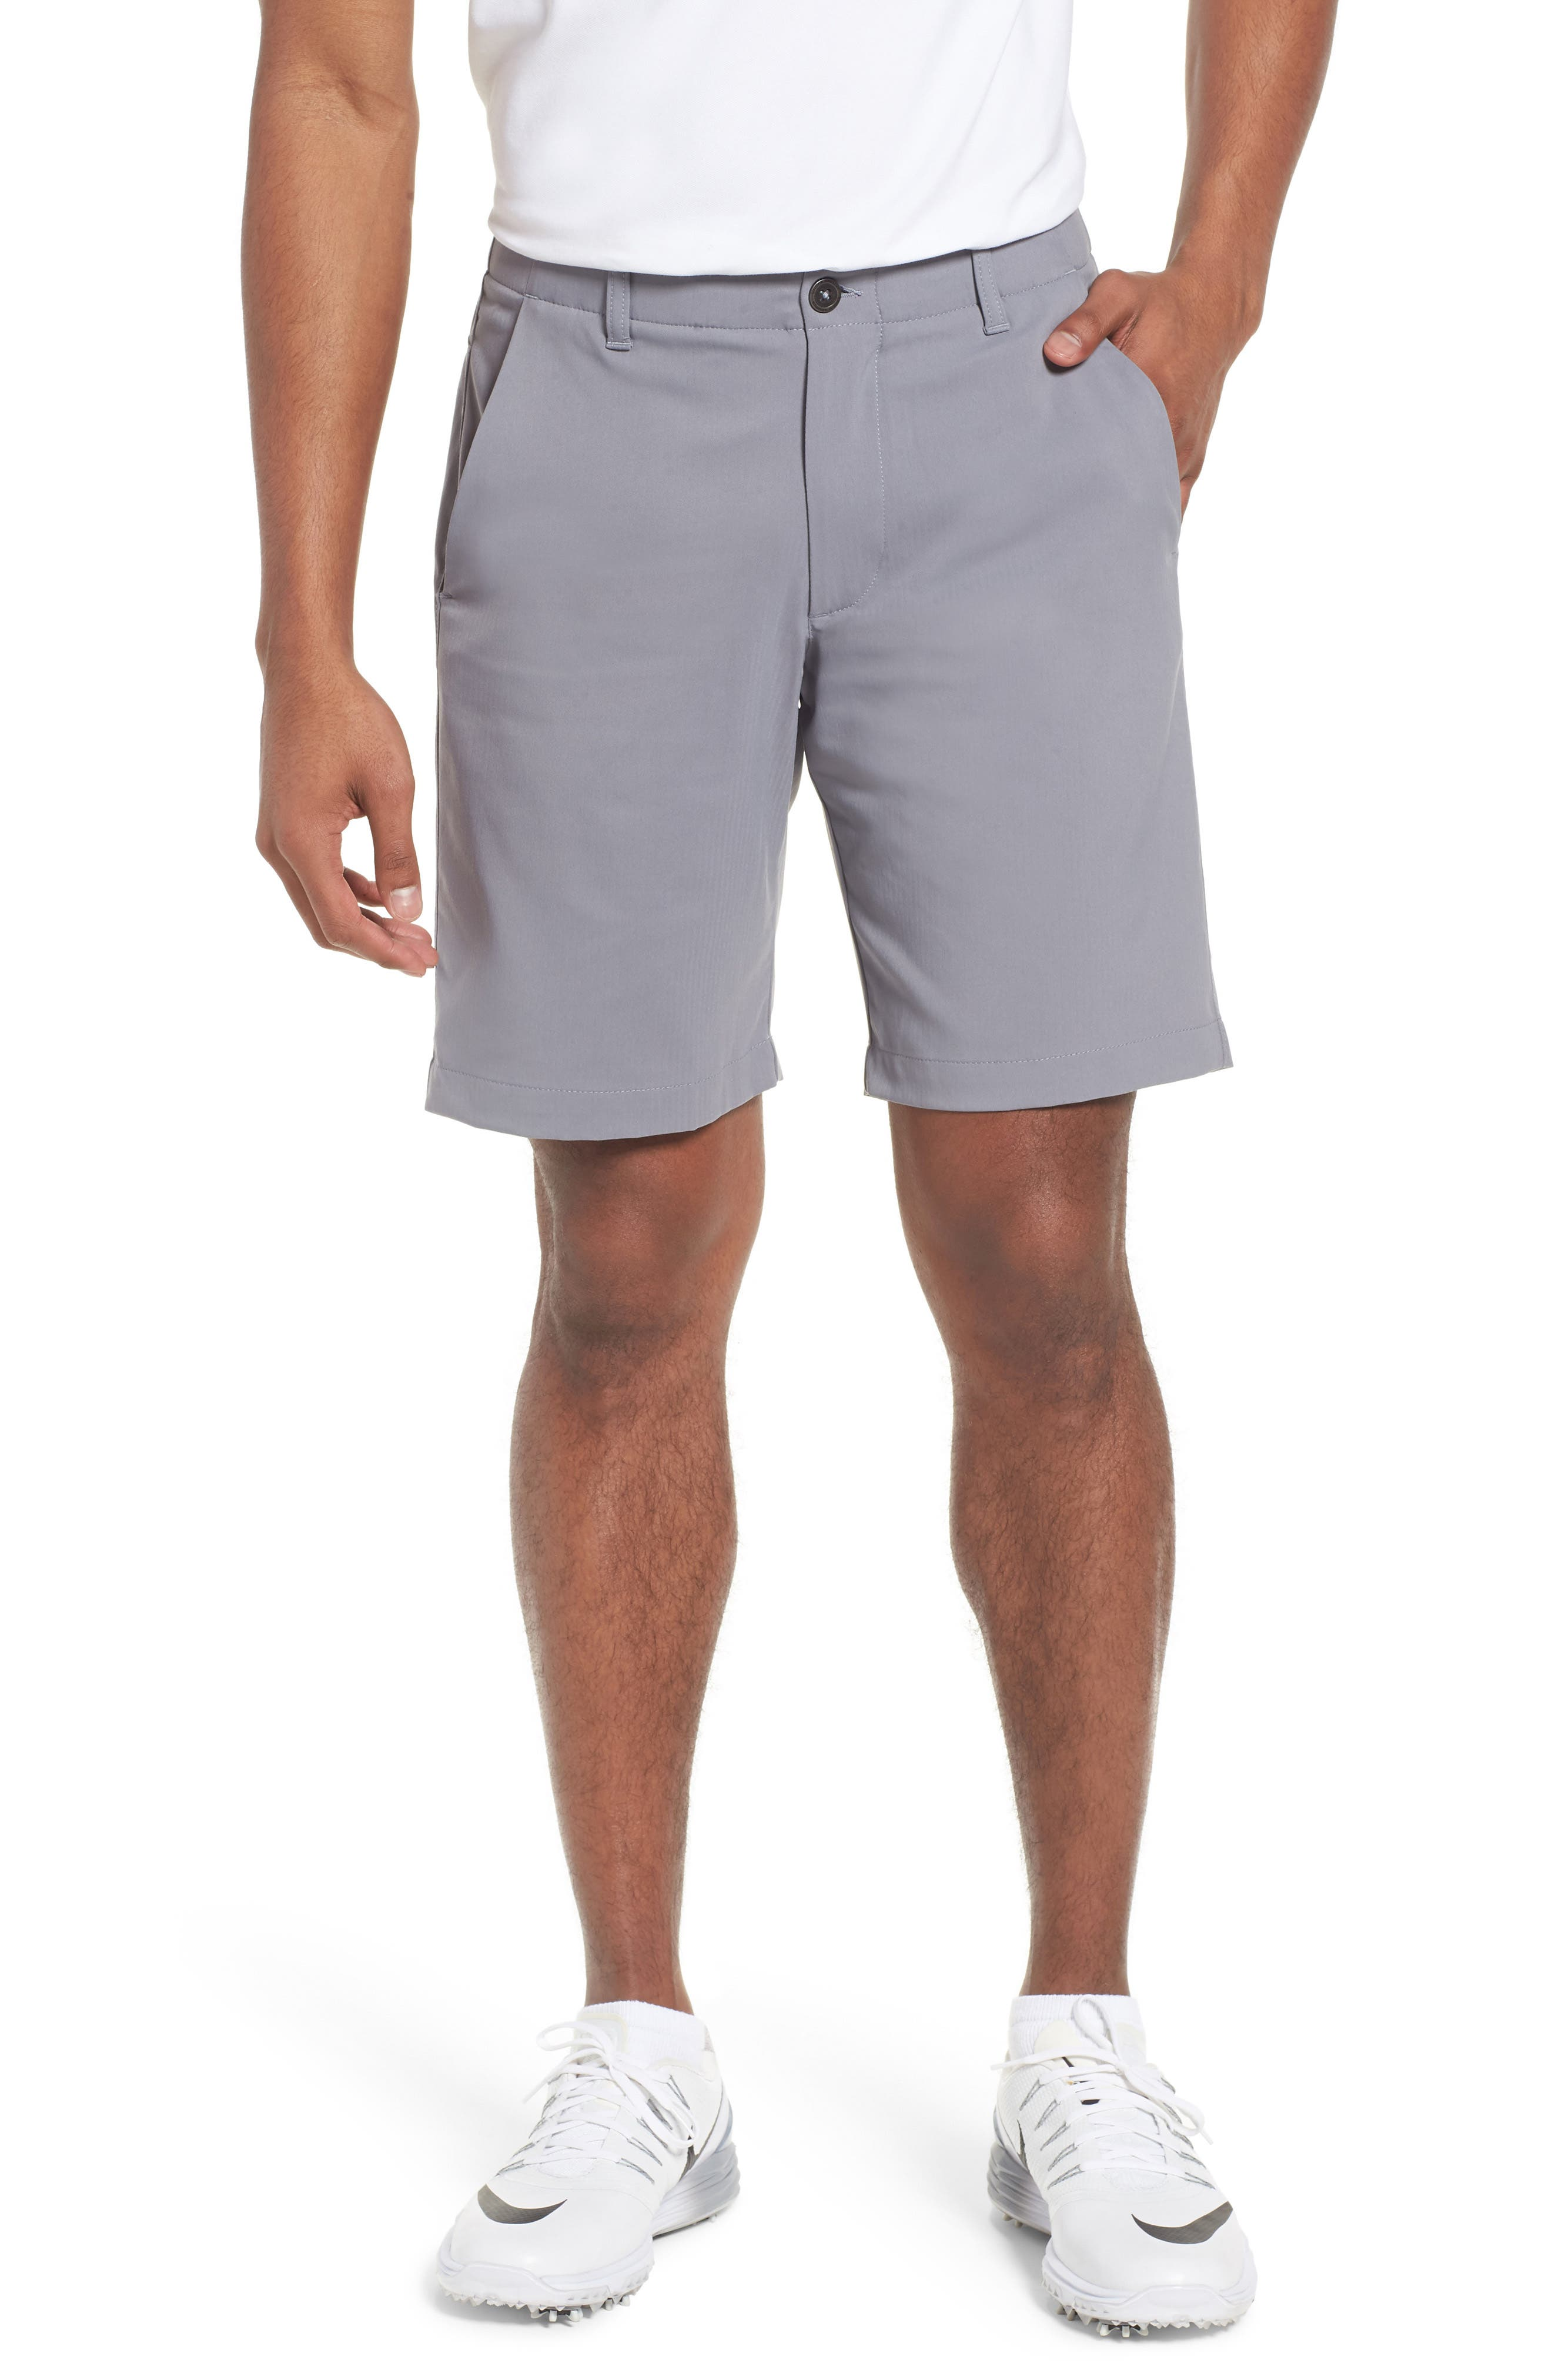 Takeover Regular Fit Golf Shorts,                         Main,                         color, Zinc Grey